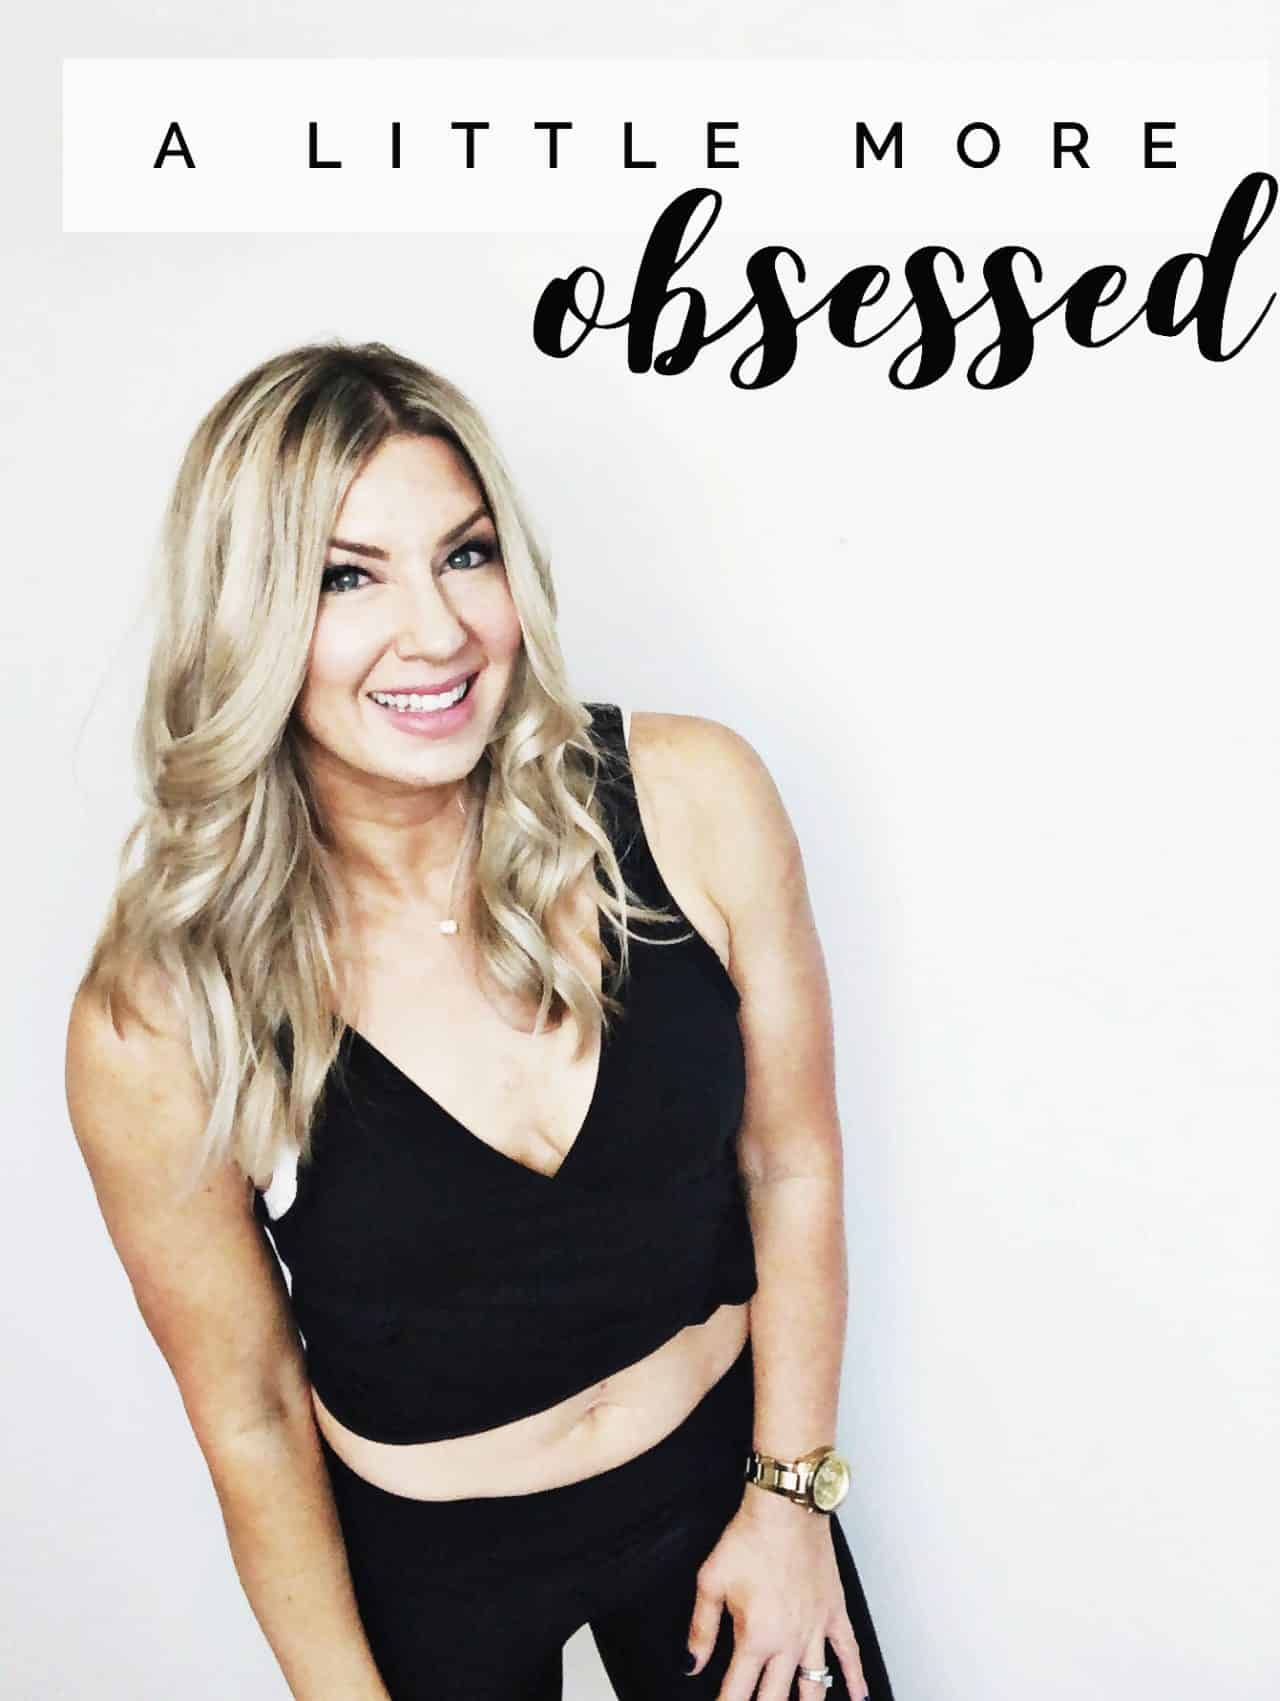 A Little More Obsessed Review 2019 - How To Get In Shape 2019, a little more obsessed 2019, 80 day obsession 2019, a little more obsessed review,